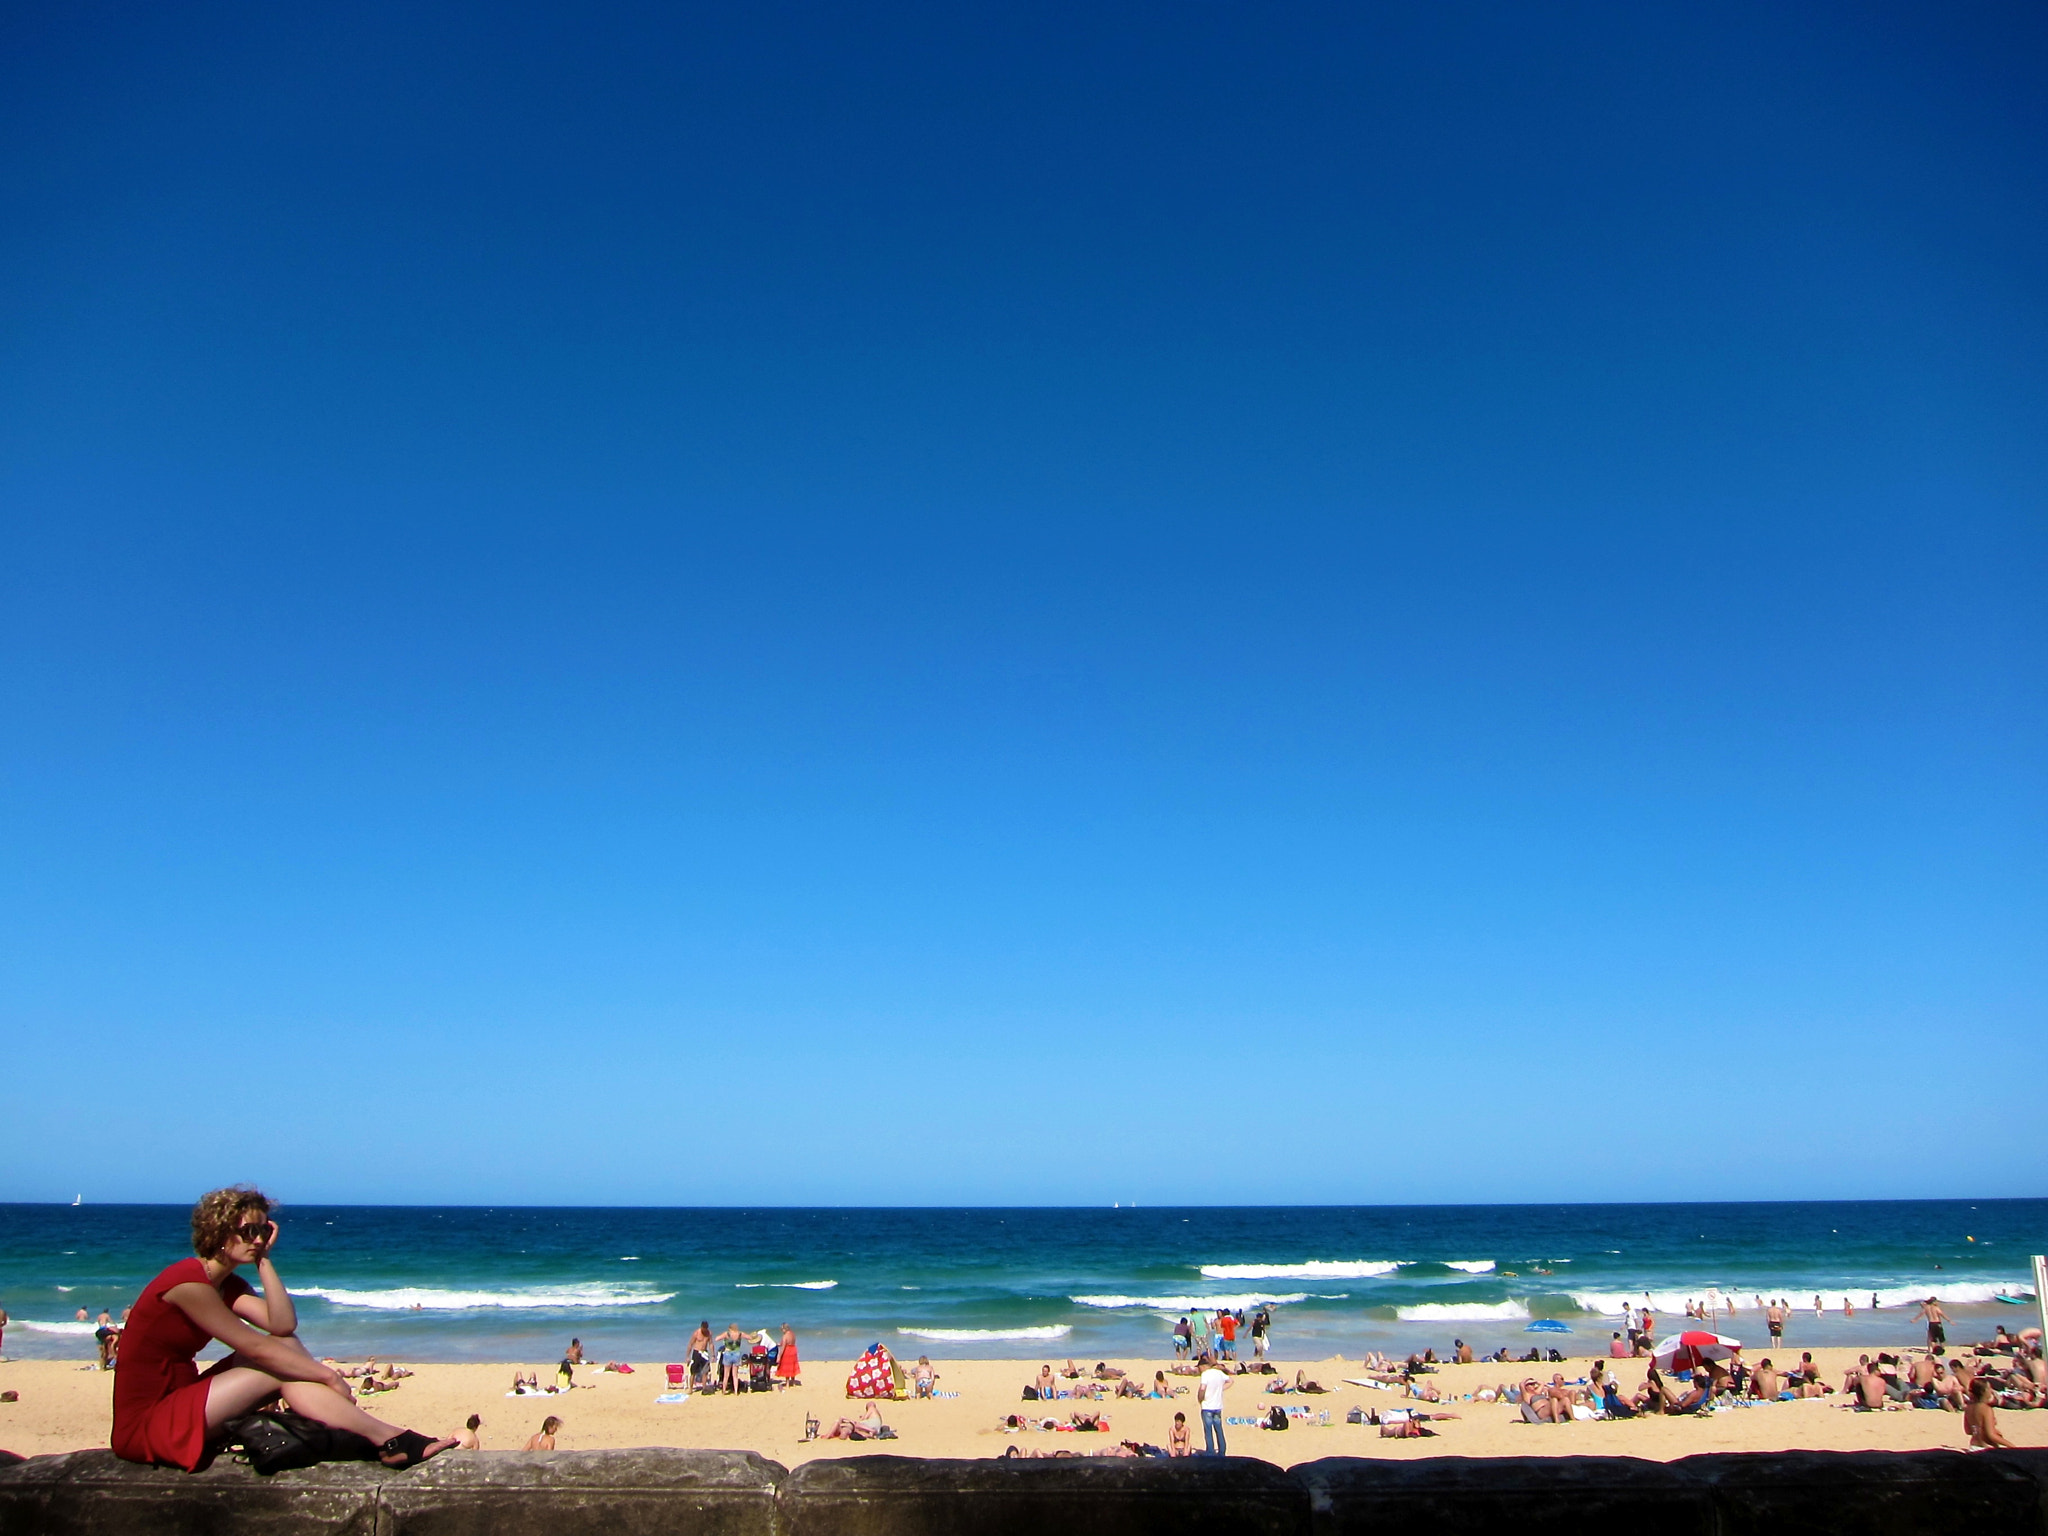 Photograph Manly Beach by Scott Kim on 500px